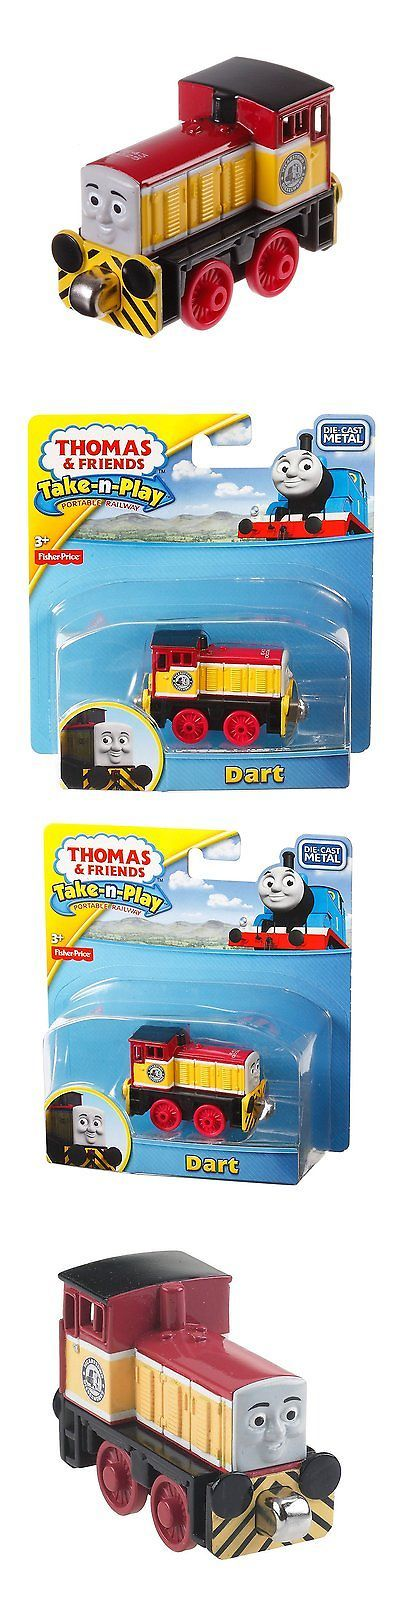 Other Thomas Toys 2629: Fisher-Price Thomas The Train Take-N-Play Dart -> BUY IT NOW ONLY: $31.82 on eBay!